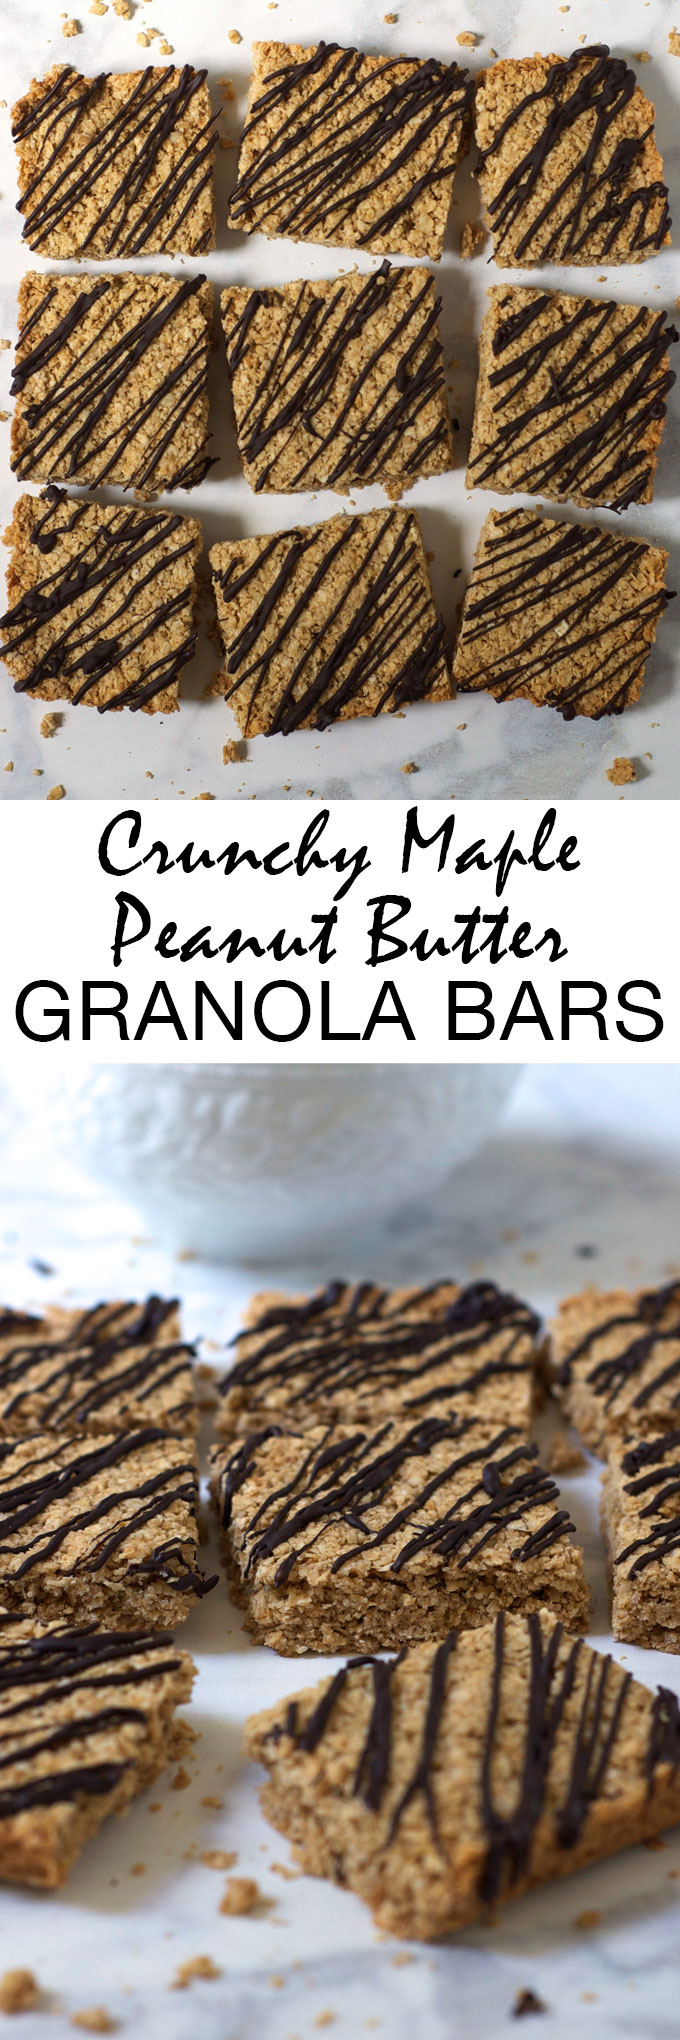 These extra crispy and crunchy maple peanut butter granola bars are gluten-free and made with simple, real food ingredients. The perfect healthy breakfast or snack!